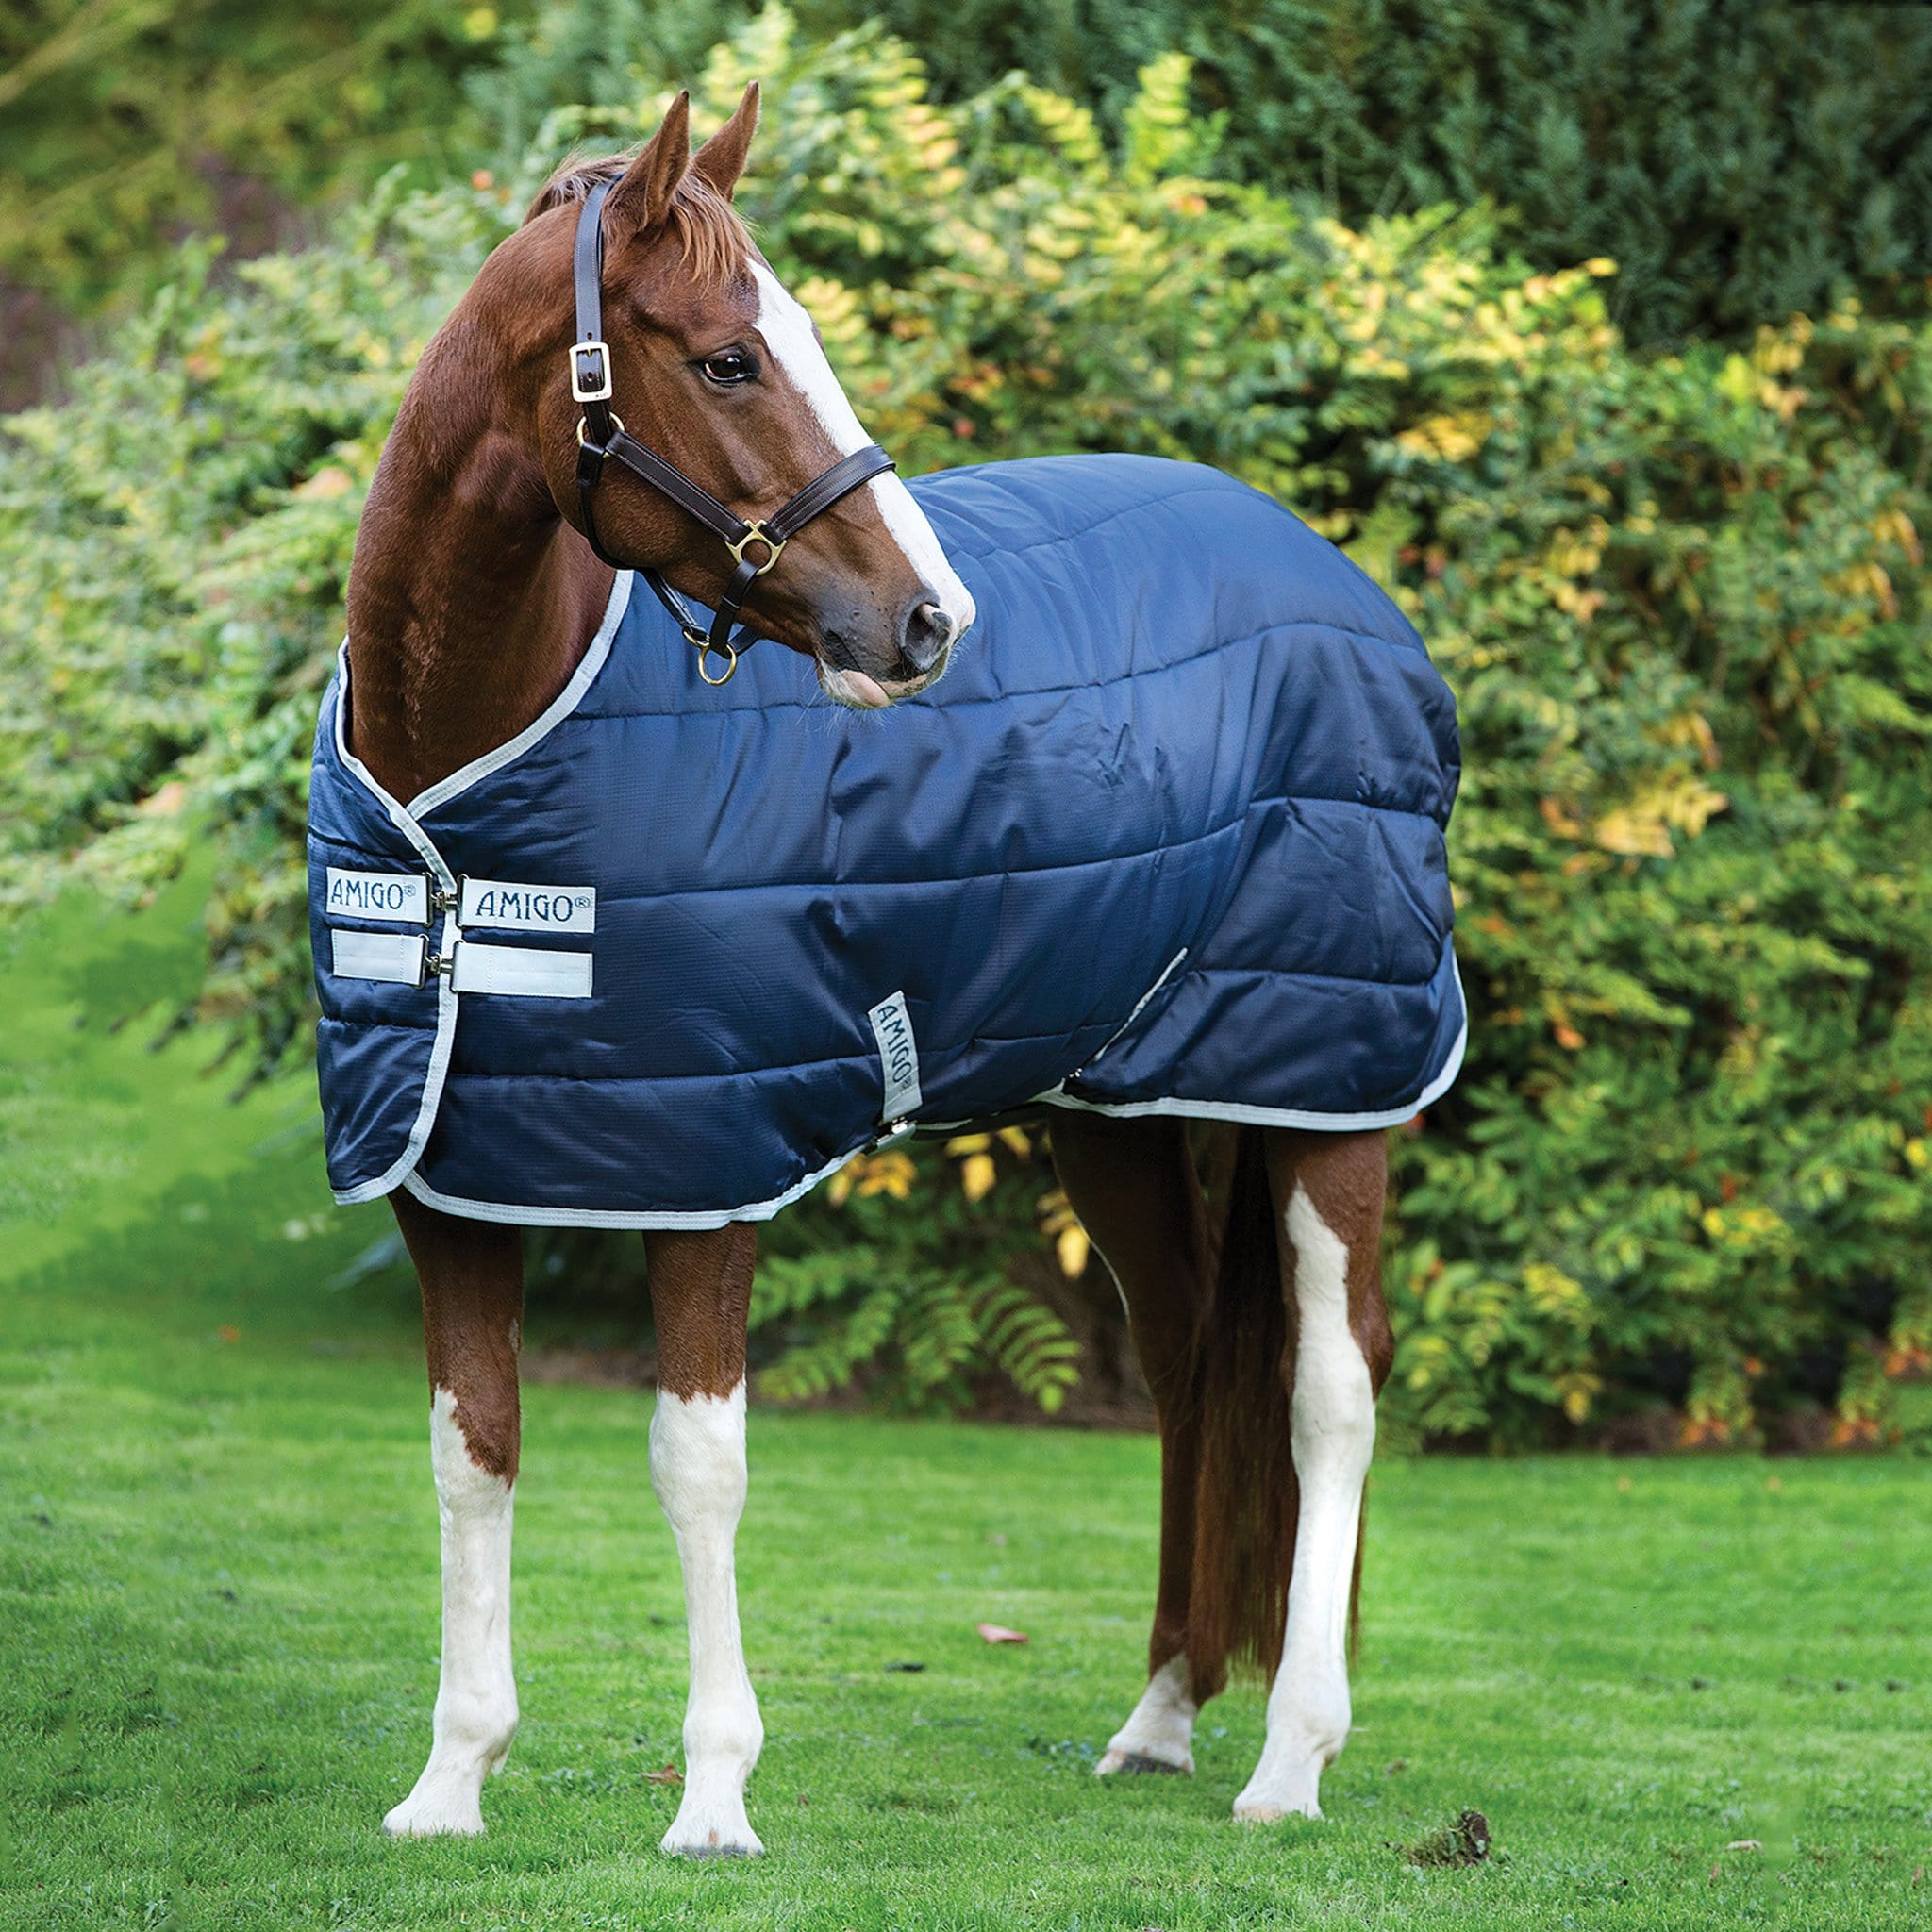 Amigo Insulator Mediumweight 200g Standard Neck Stable Rug Front and Side View ABRA22